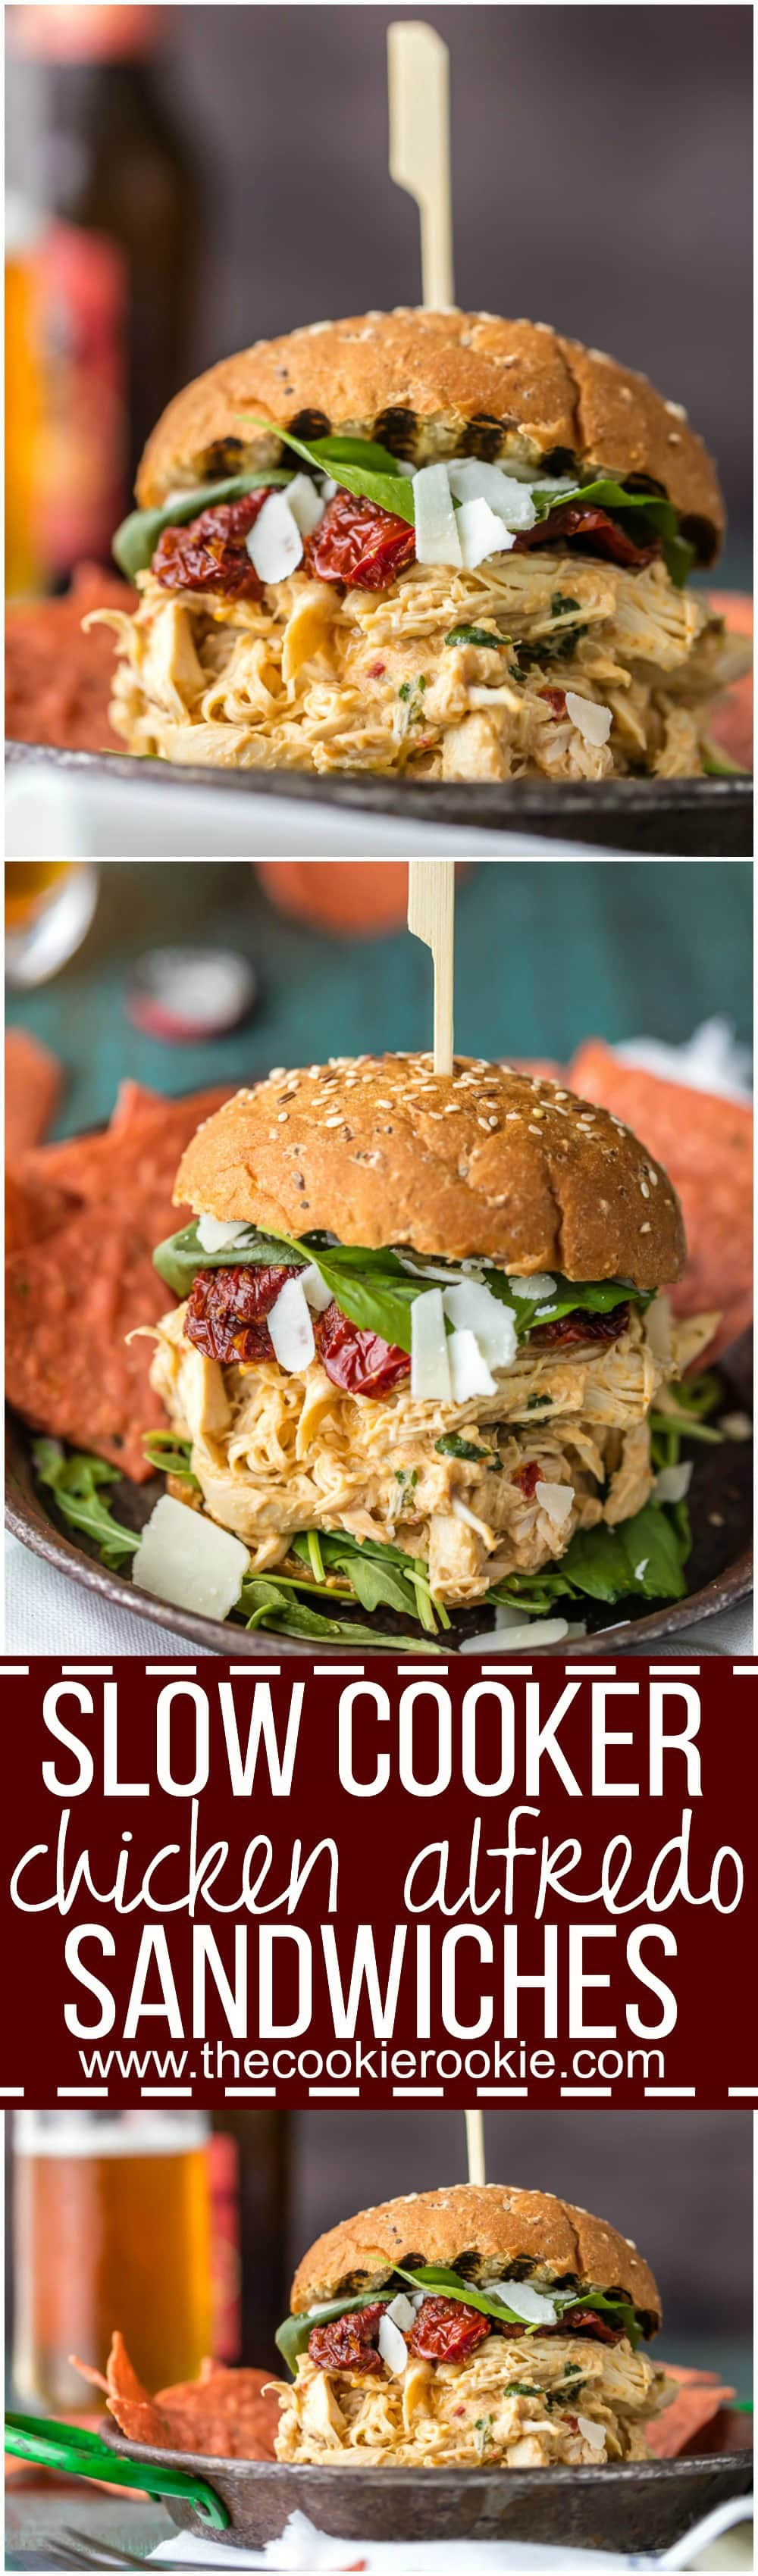 These SLOW COOKER CHICKEN ALFREDO SANDWICHES are simple, easy, and delicious. A quick and easy crockpot meal the entire family will love. Topped with sun dried tomatoes, basil, and parmesan. PERFECTION!